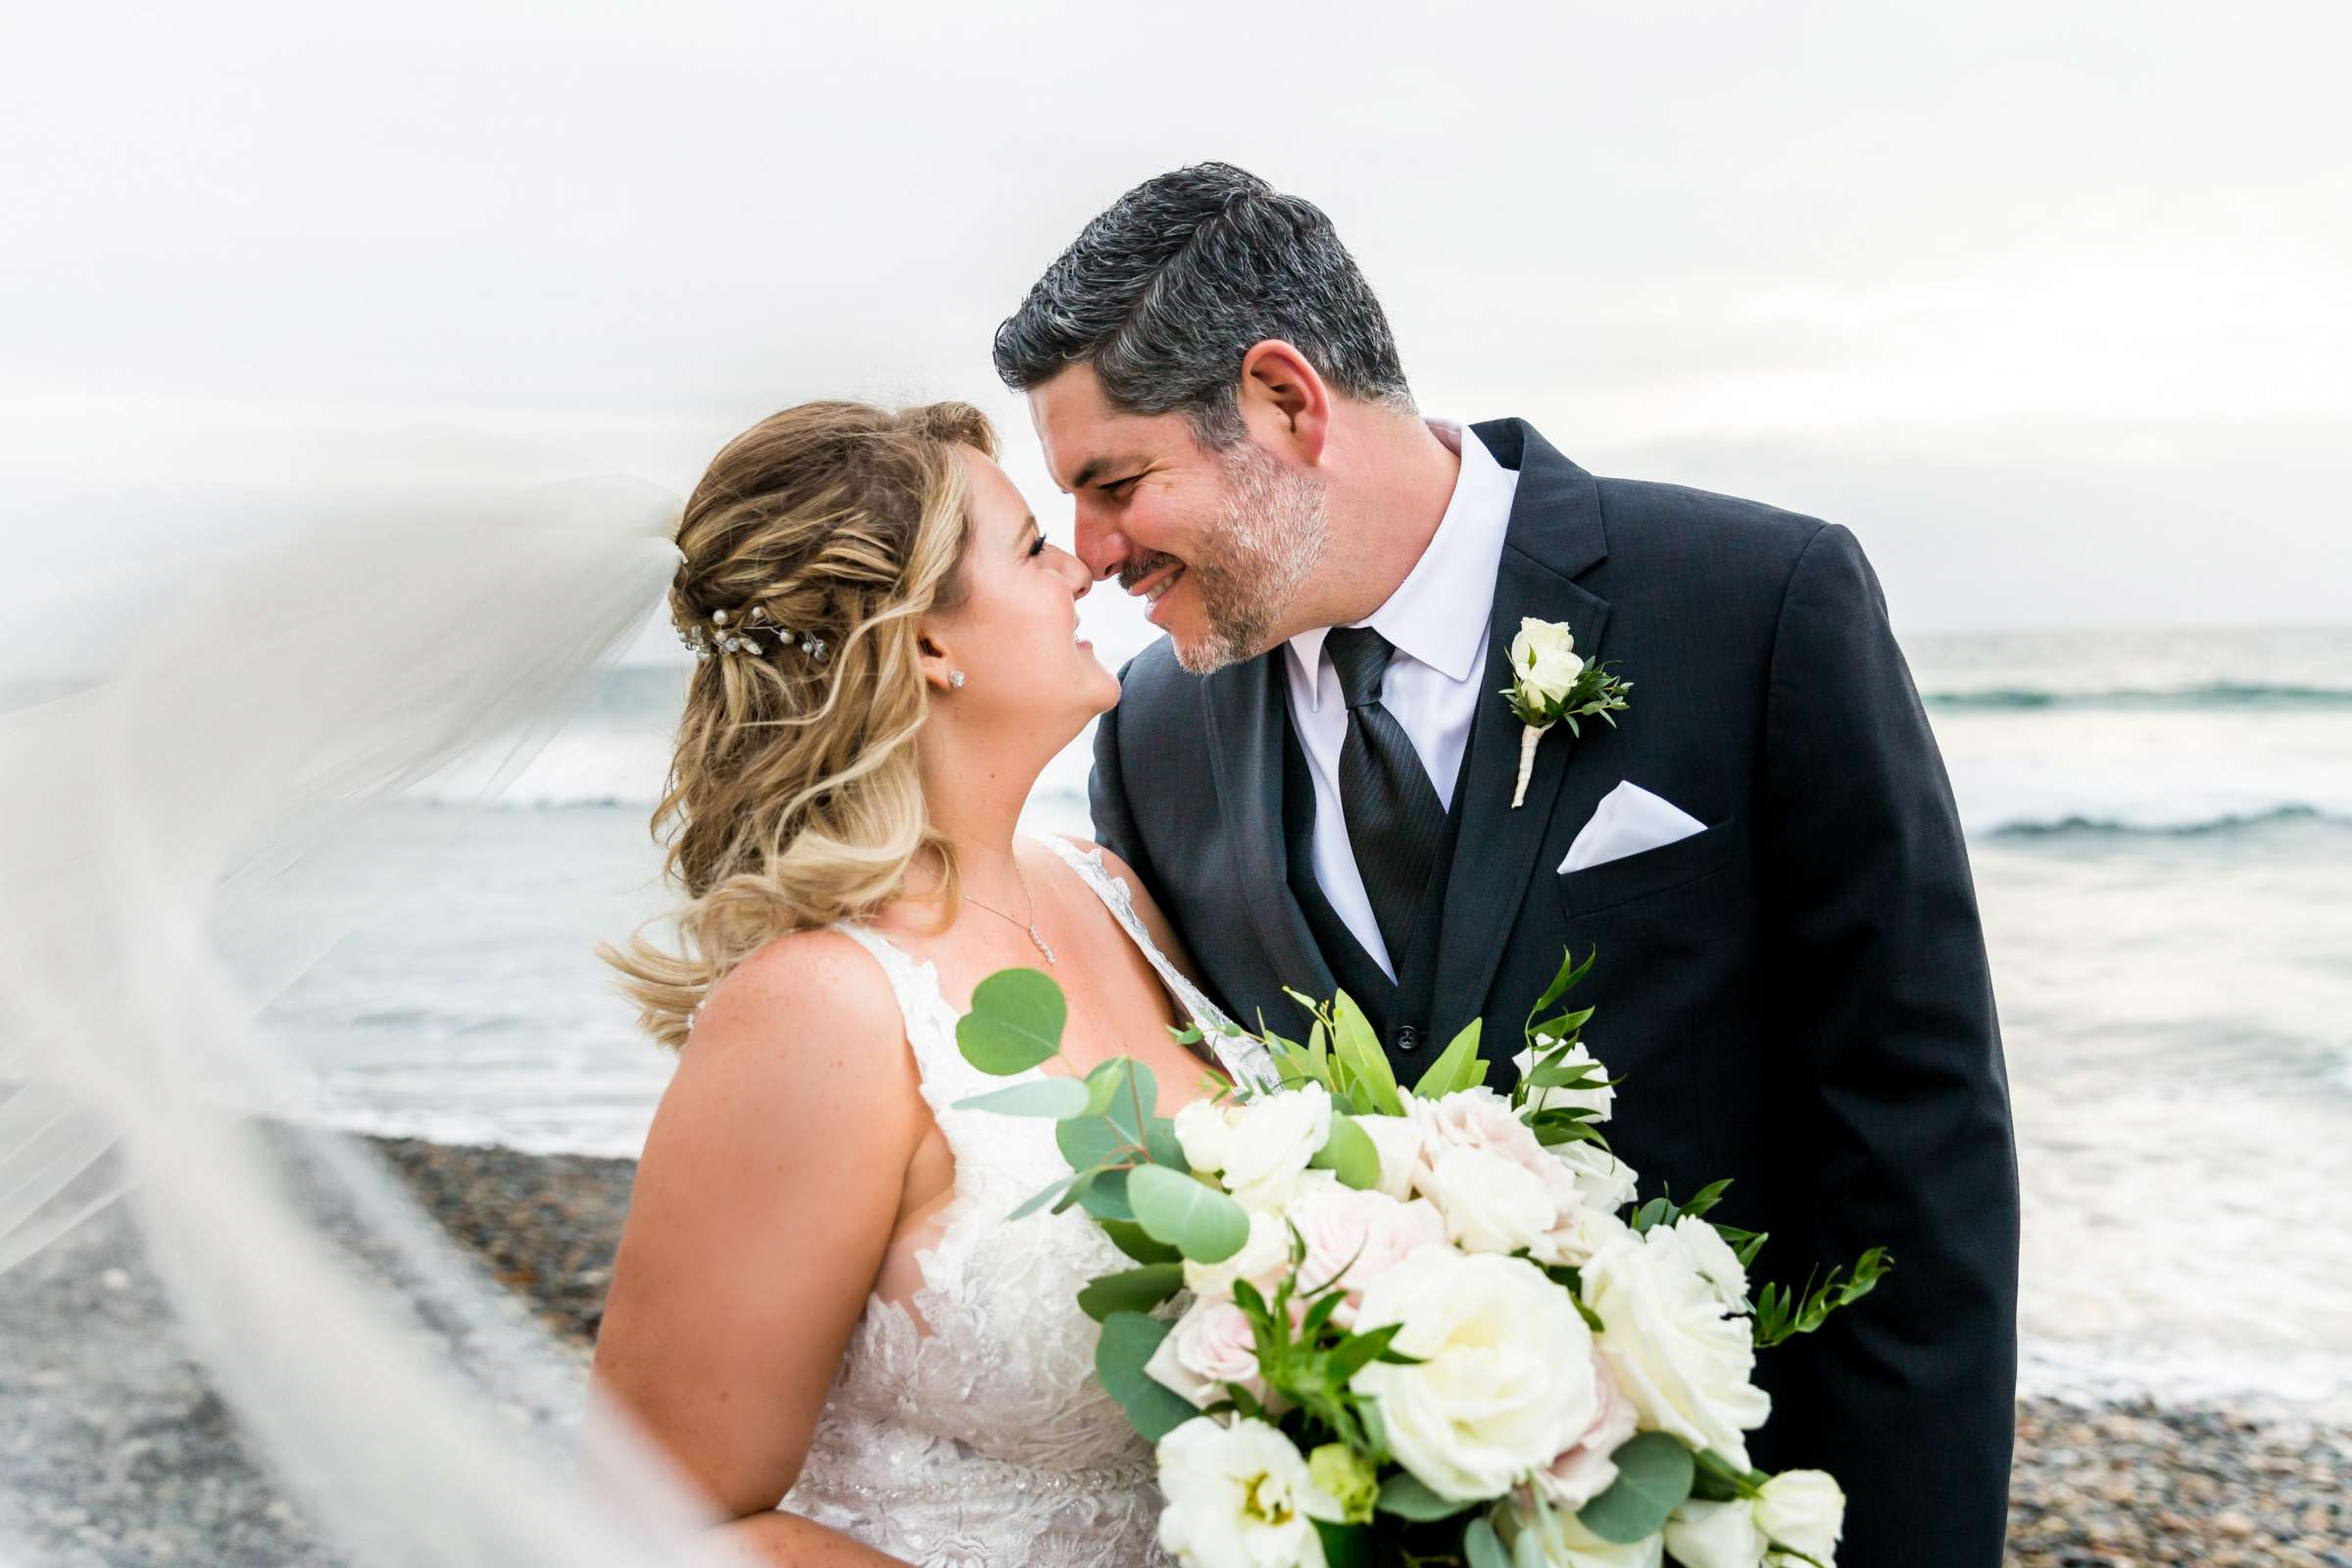 Cape Rey Carlsbad, A Hilton Resort Wedding, Michelle and Justin Wedding Photo #1 by True Photography